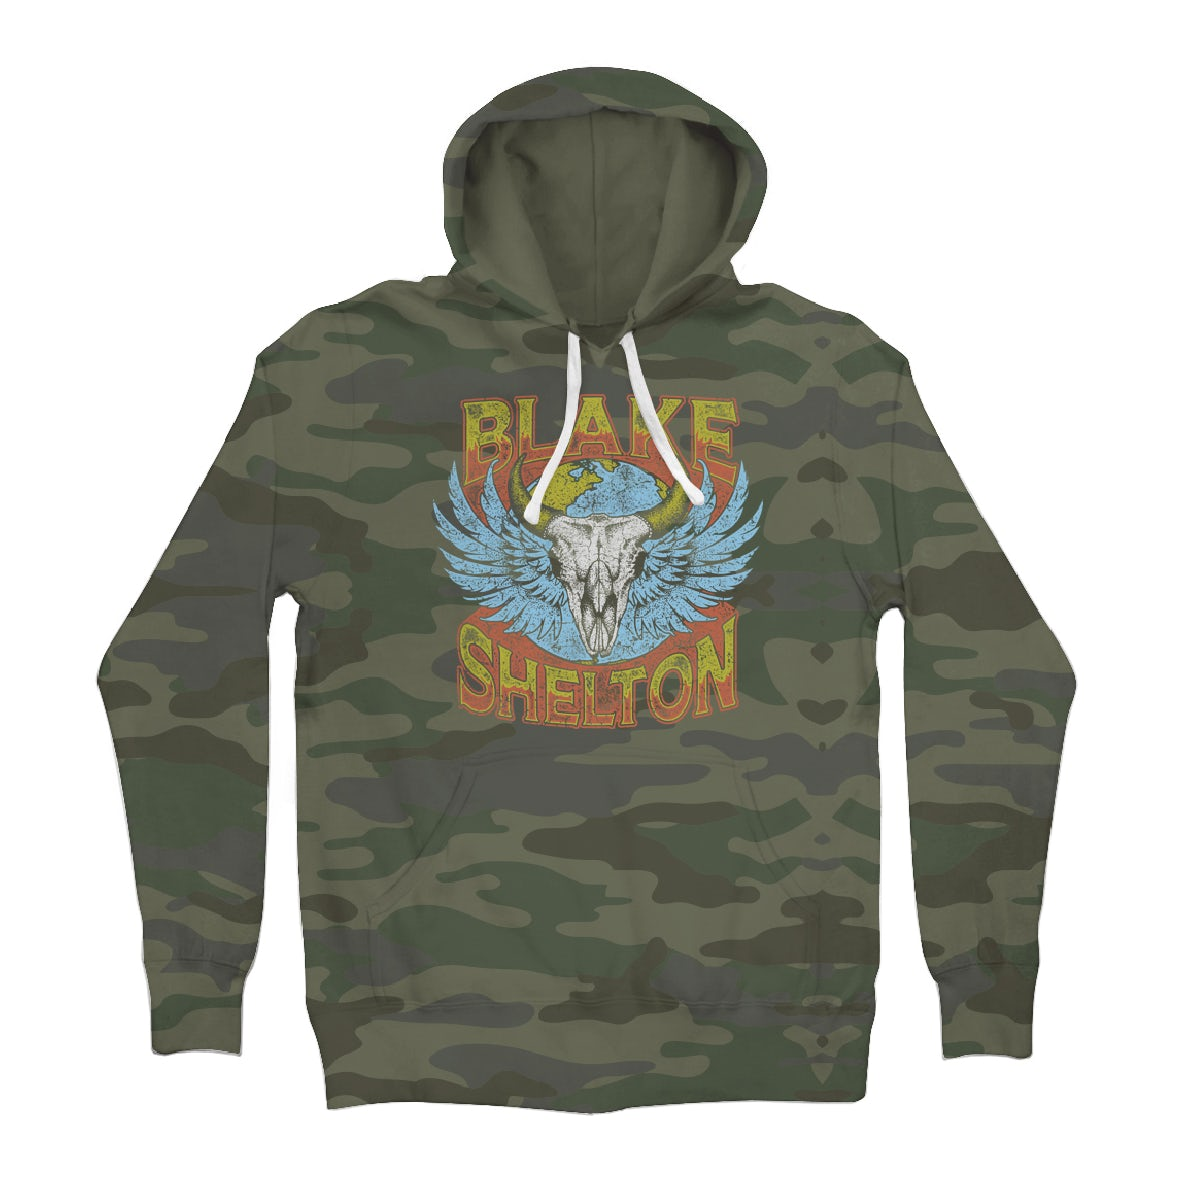 Camo Hoodie Friends Blake Shelton Friends And Heroes Camo Pullover Hoodie